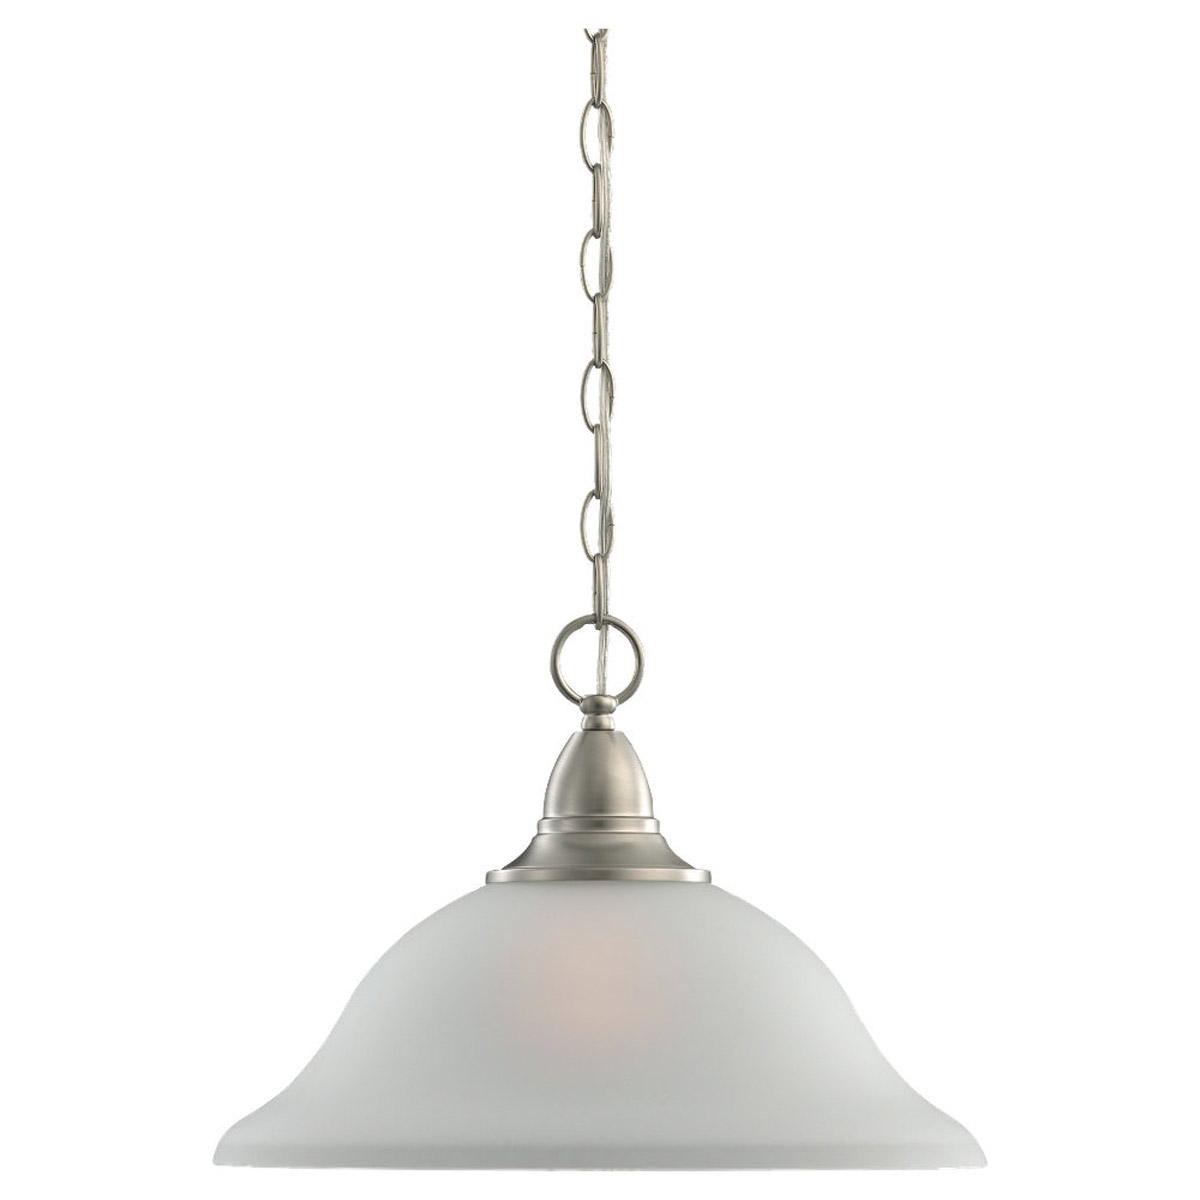 Sea Gull Lighting Albany 1 Light Pendant in Brushed Nickel 65575-962